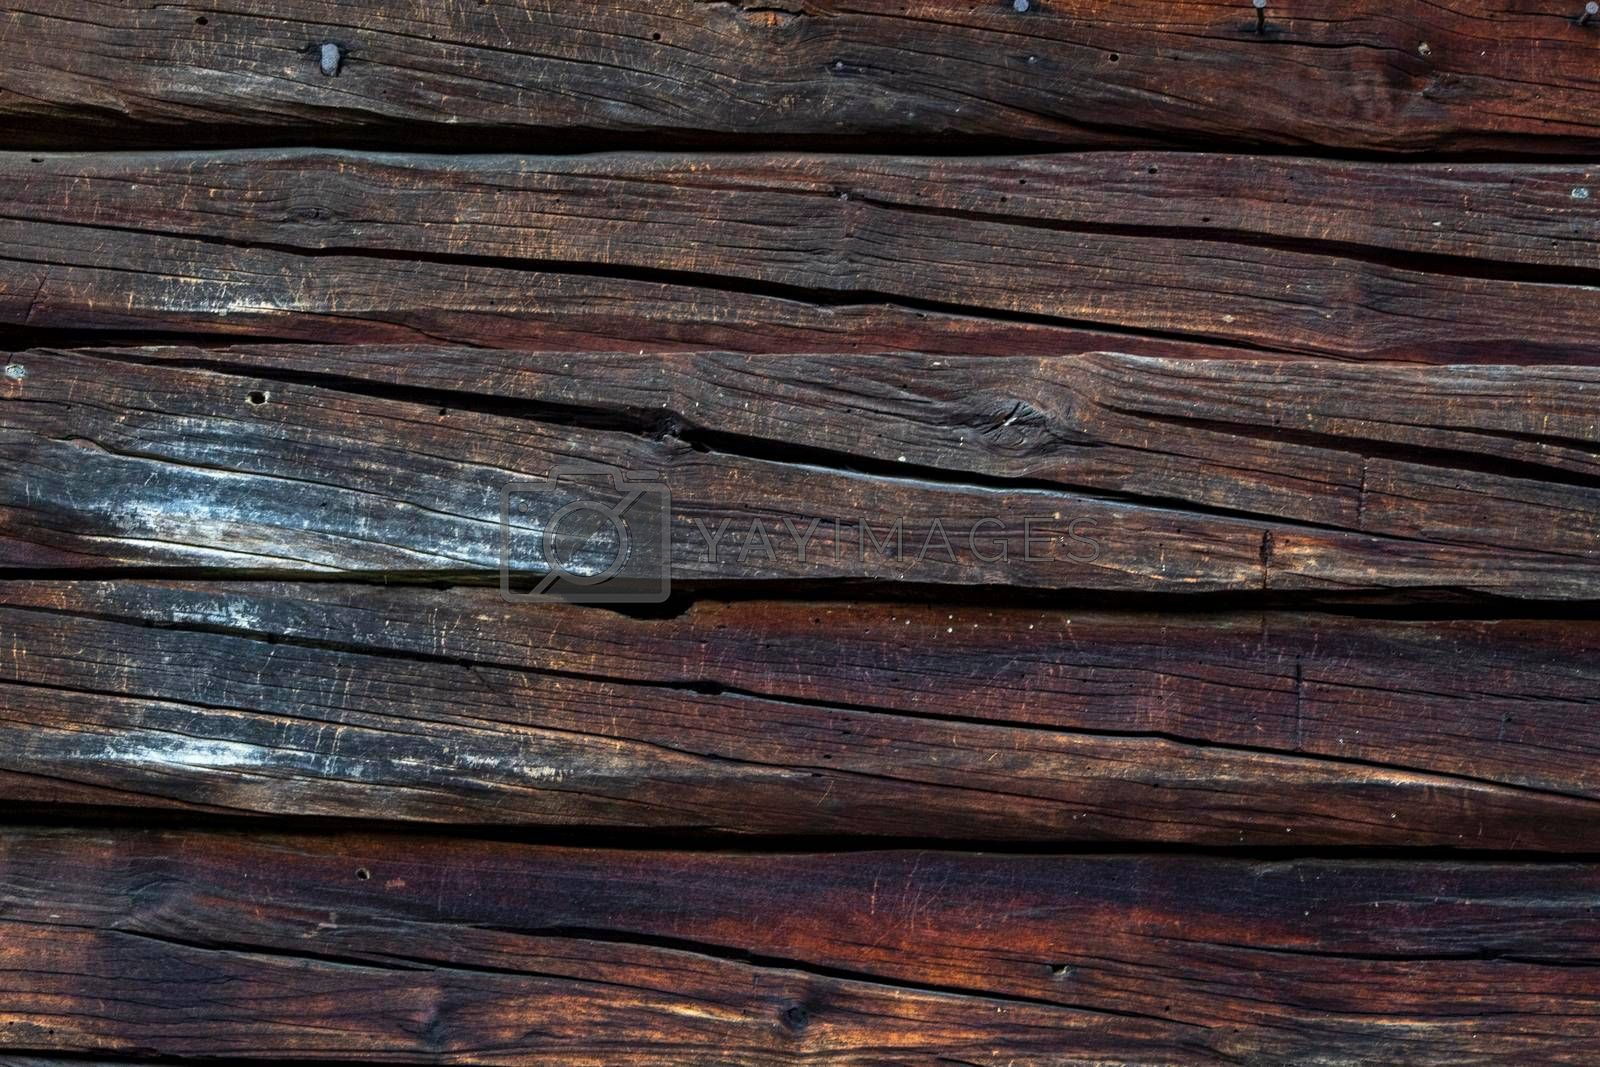 A dark wooden texture on a house